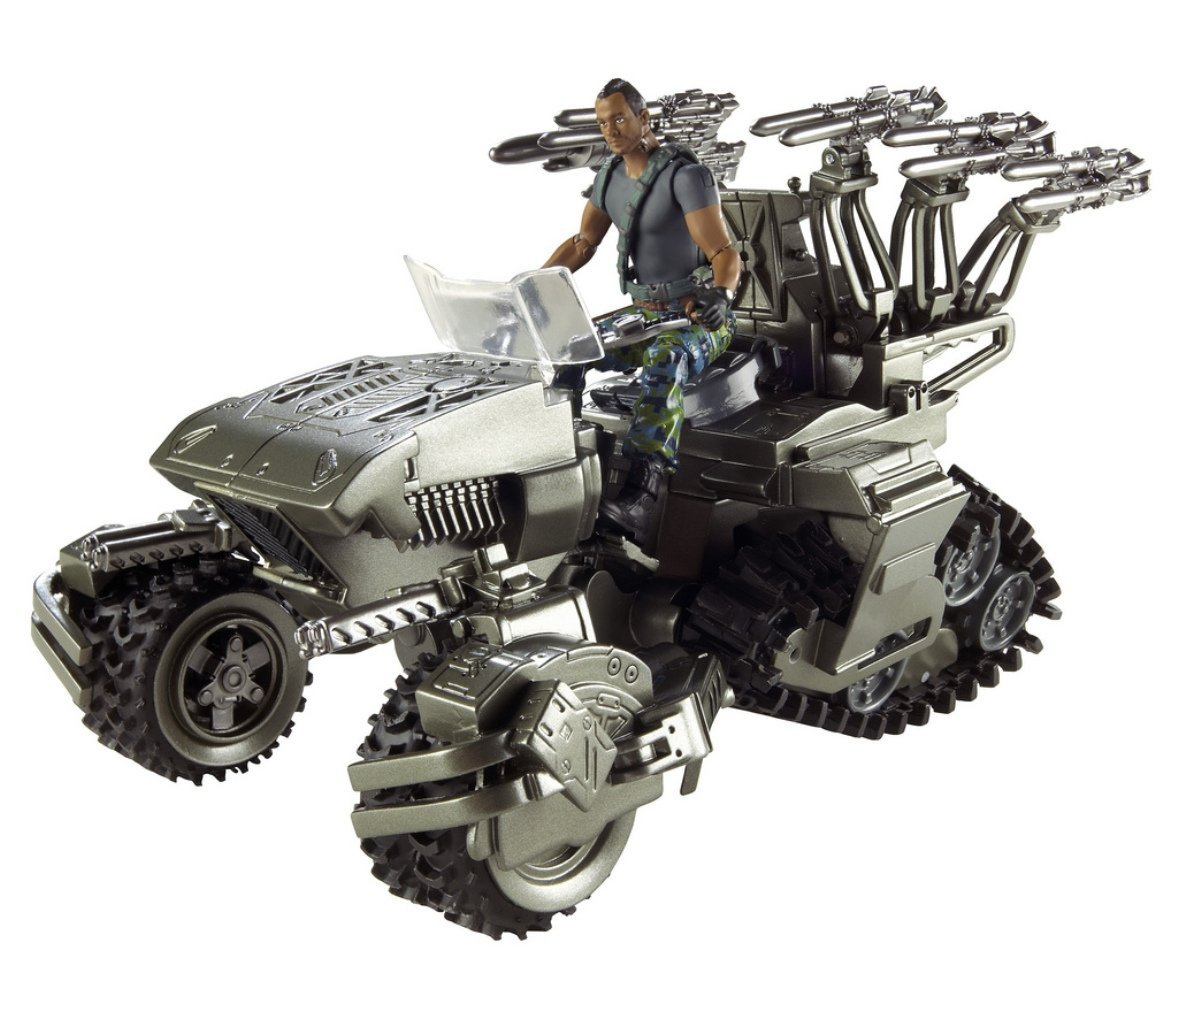 Avatar Toys: James Cameron's AVATAR RDA GRINDER Collectible Vehicle Toy